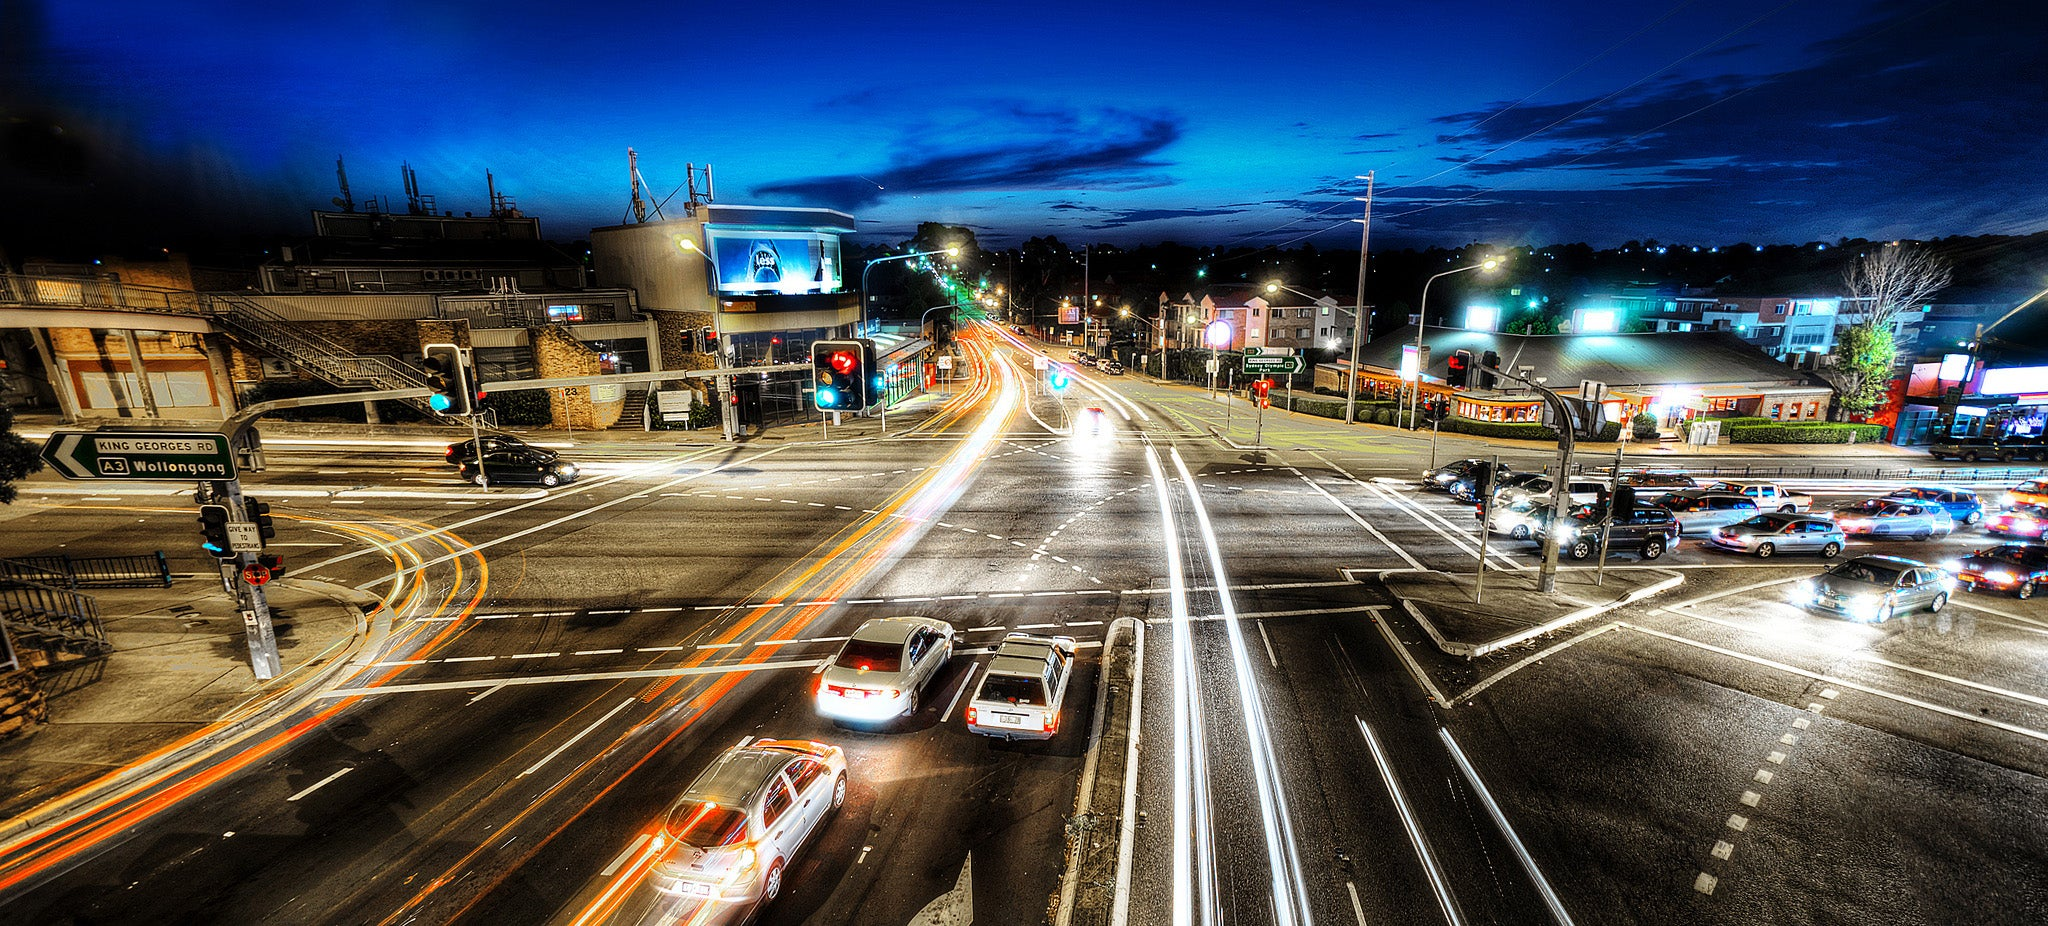 Beverly Hills In California Has Decided To Build An On-Demand Autonomous Car Service